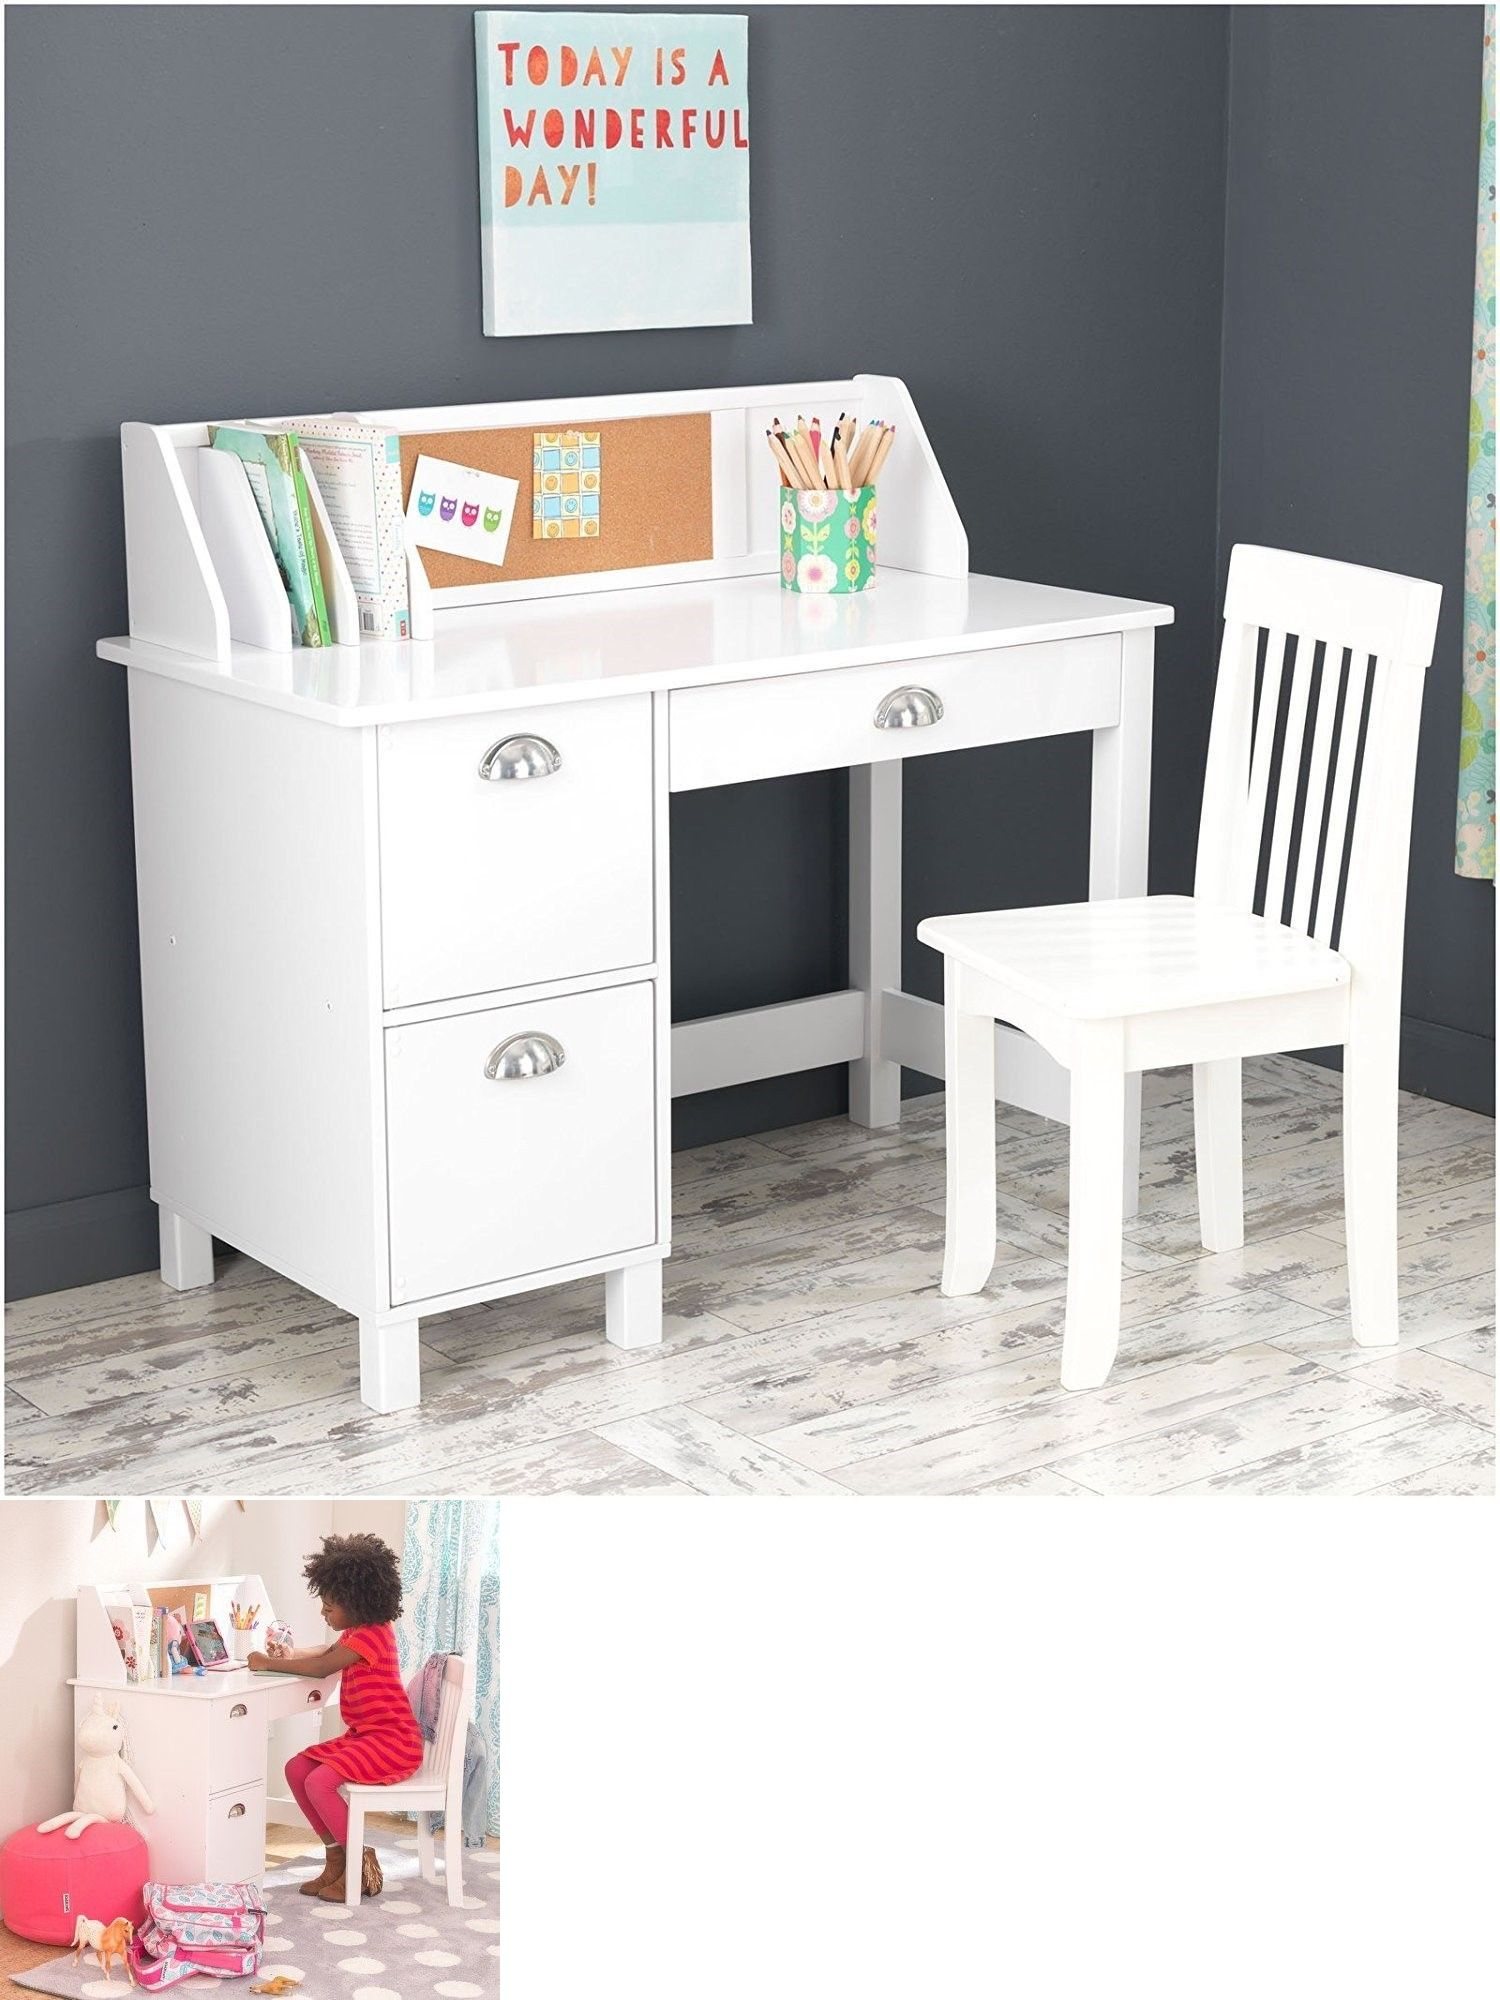 Enjoyable Desks 115750 Kidkraft 26704 Kids Children S Wood Study Desk Pdpeps Interior Chair Design Pdpepsorg